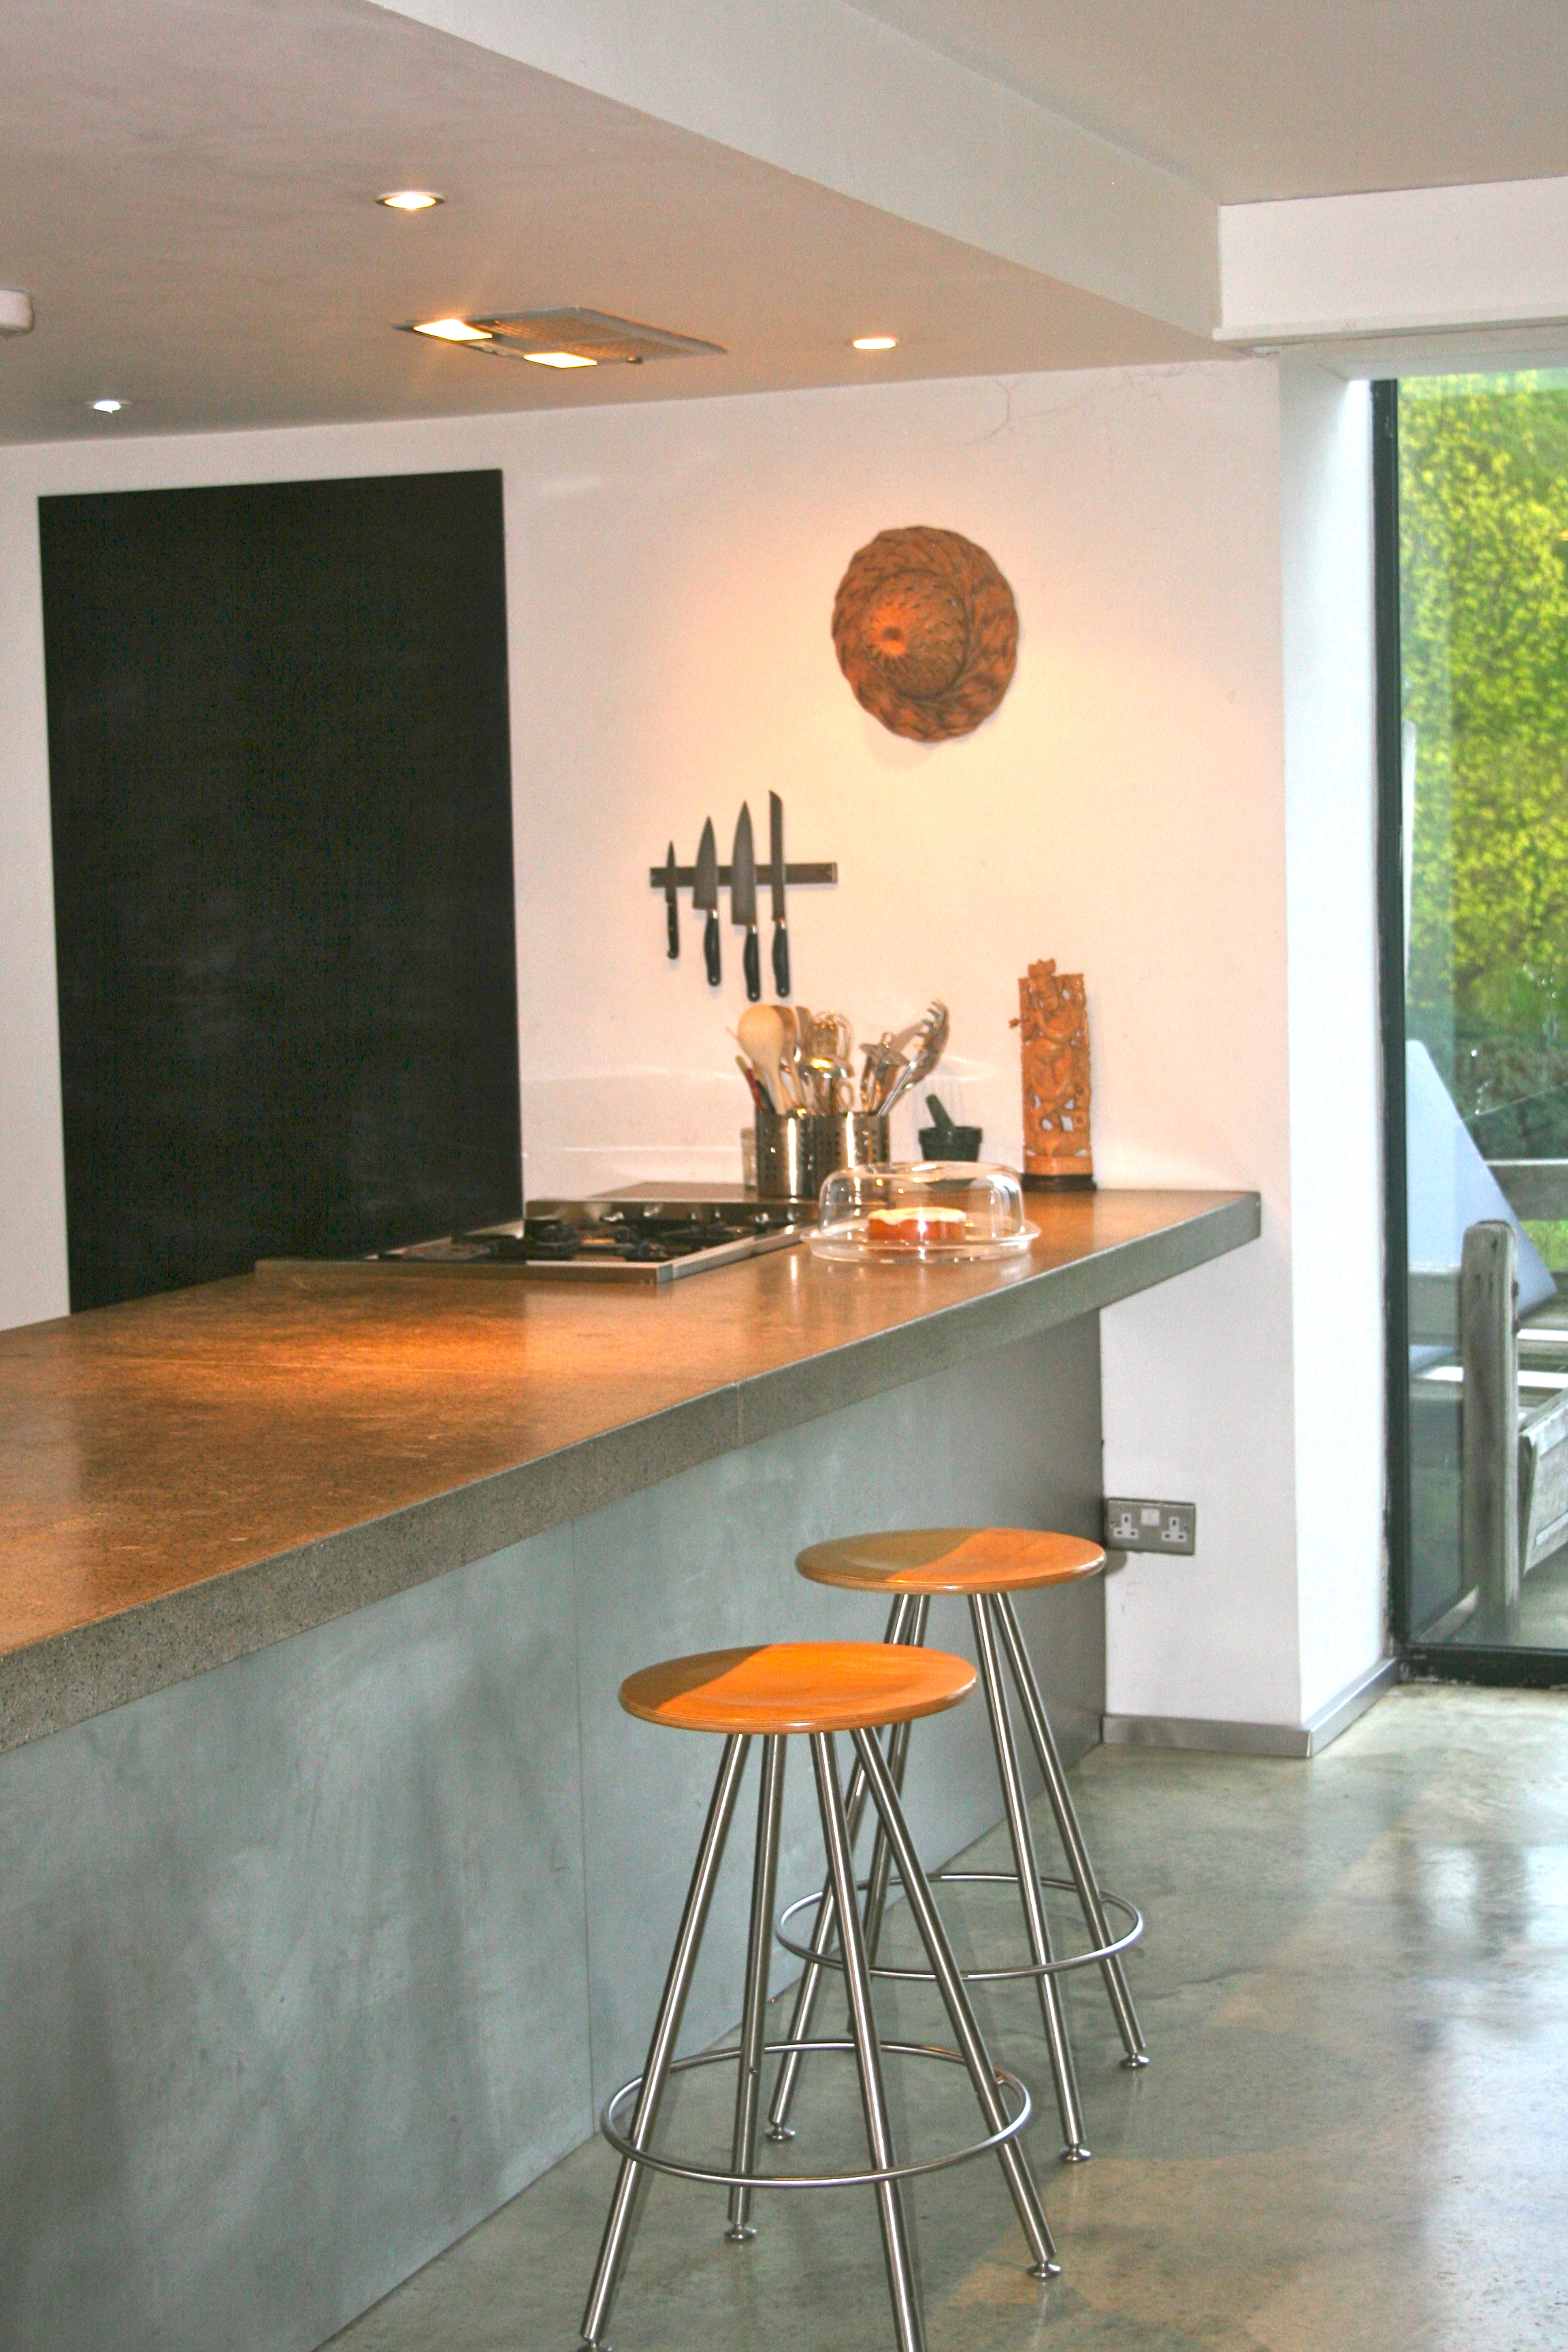 Concrete and stone kitchen